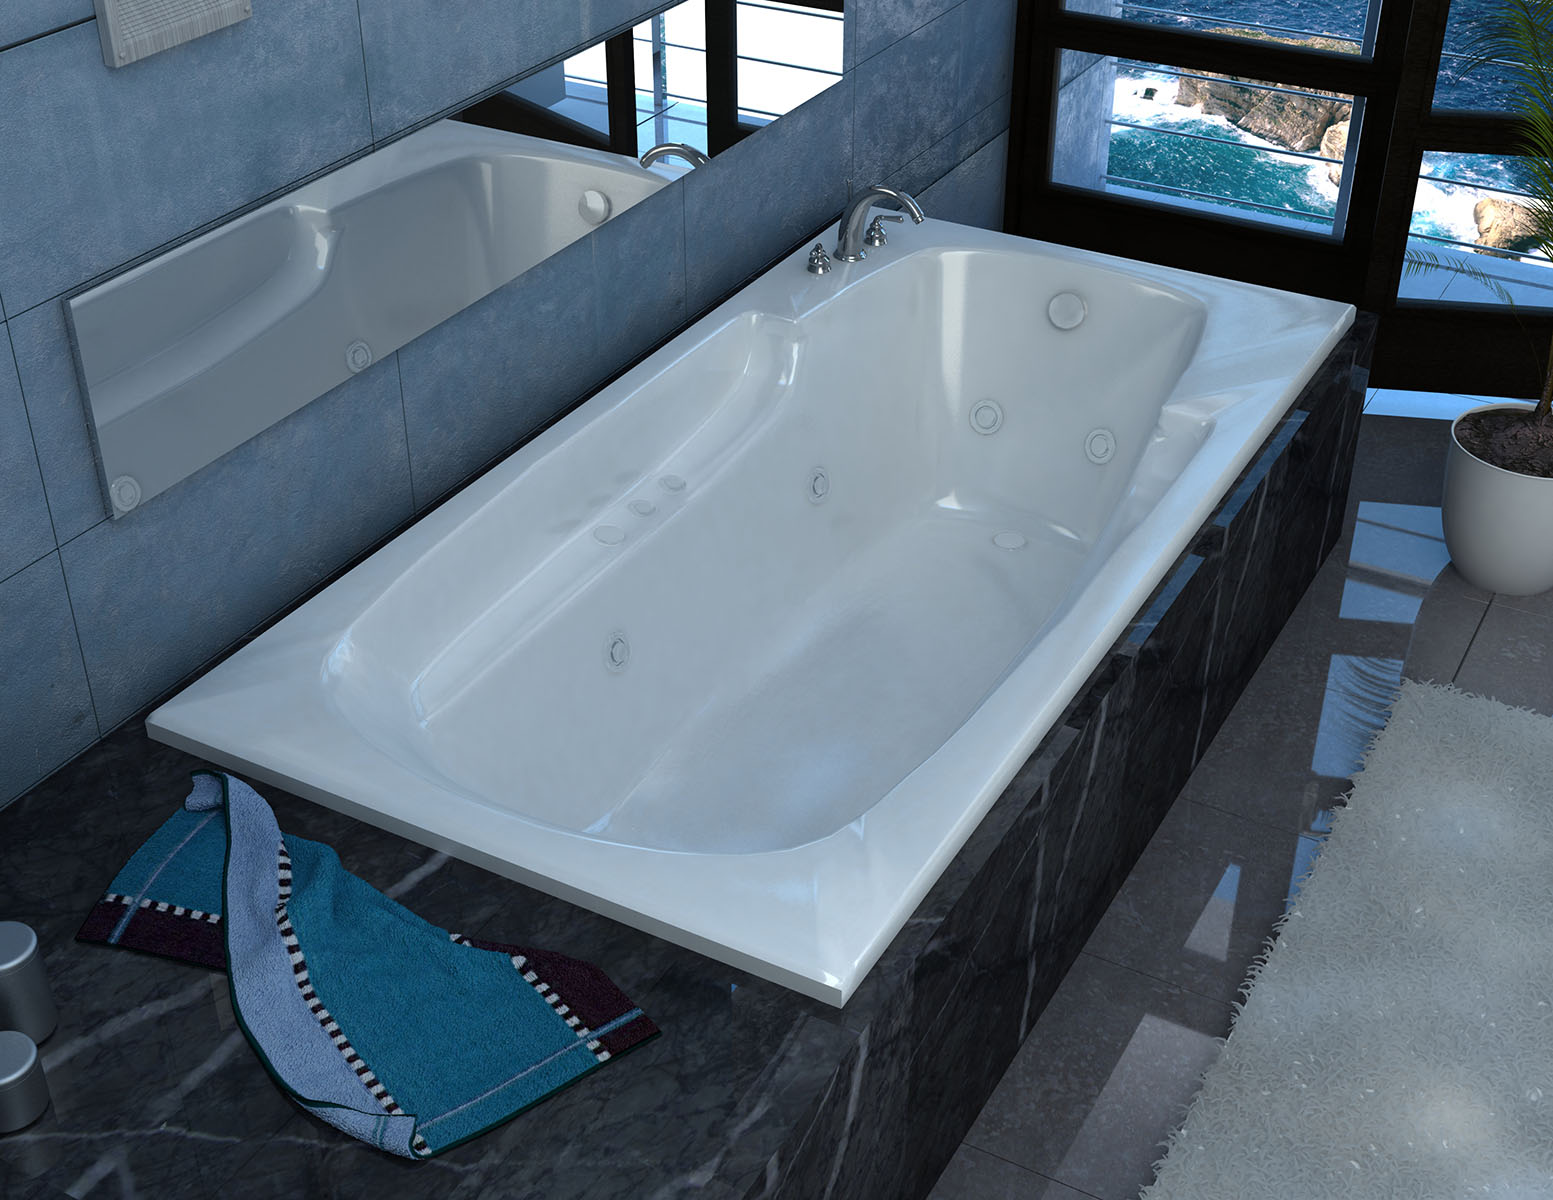 Aesis 32 x 60 Rectangular Whirlpool Jetted Bathtub